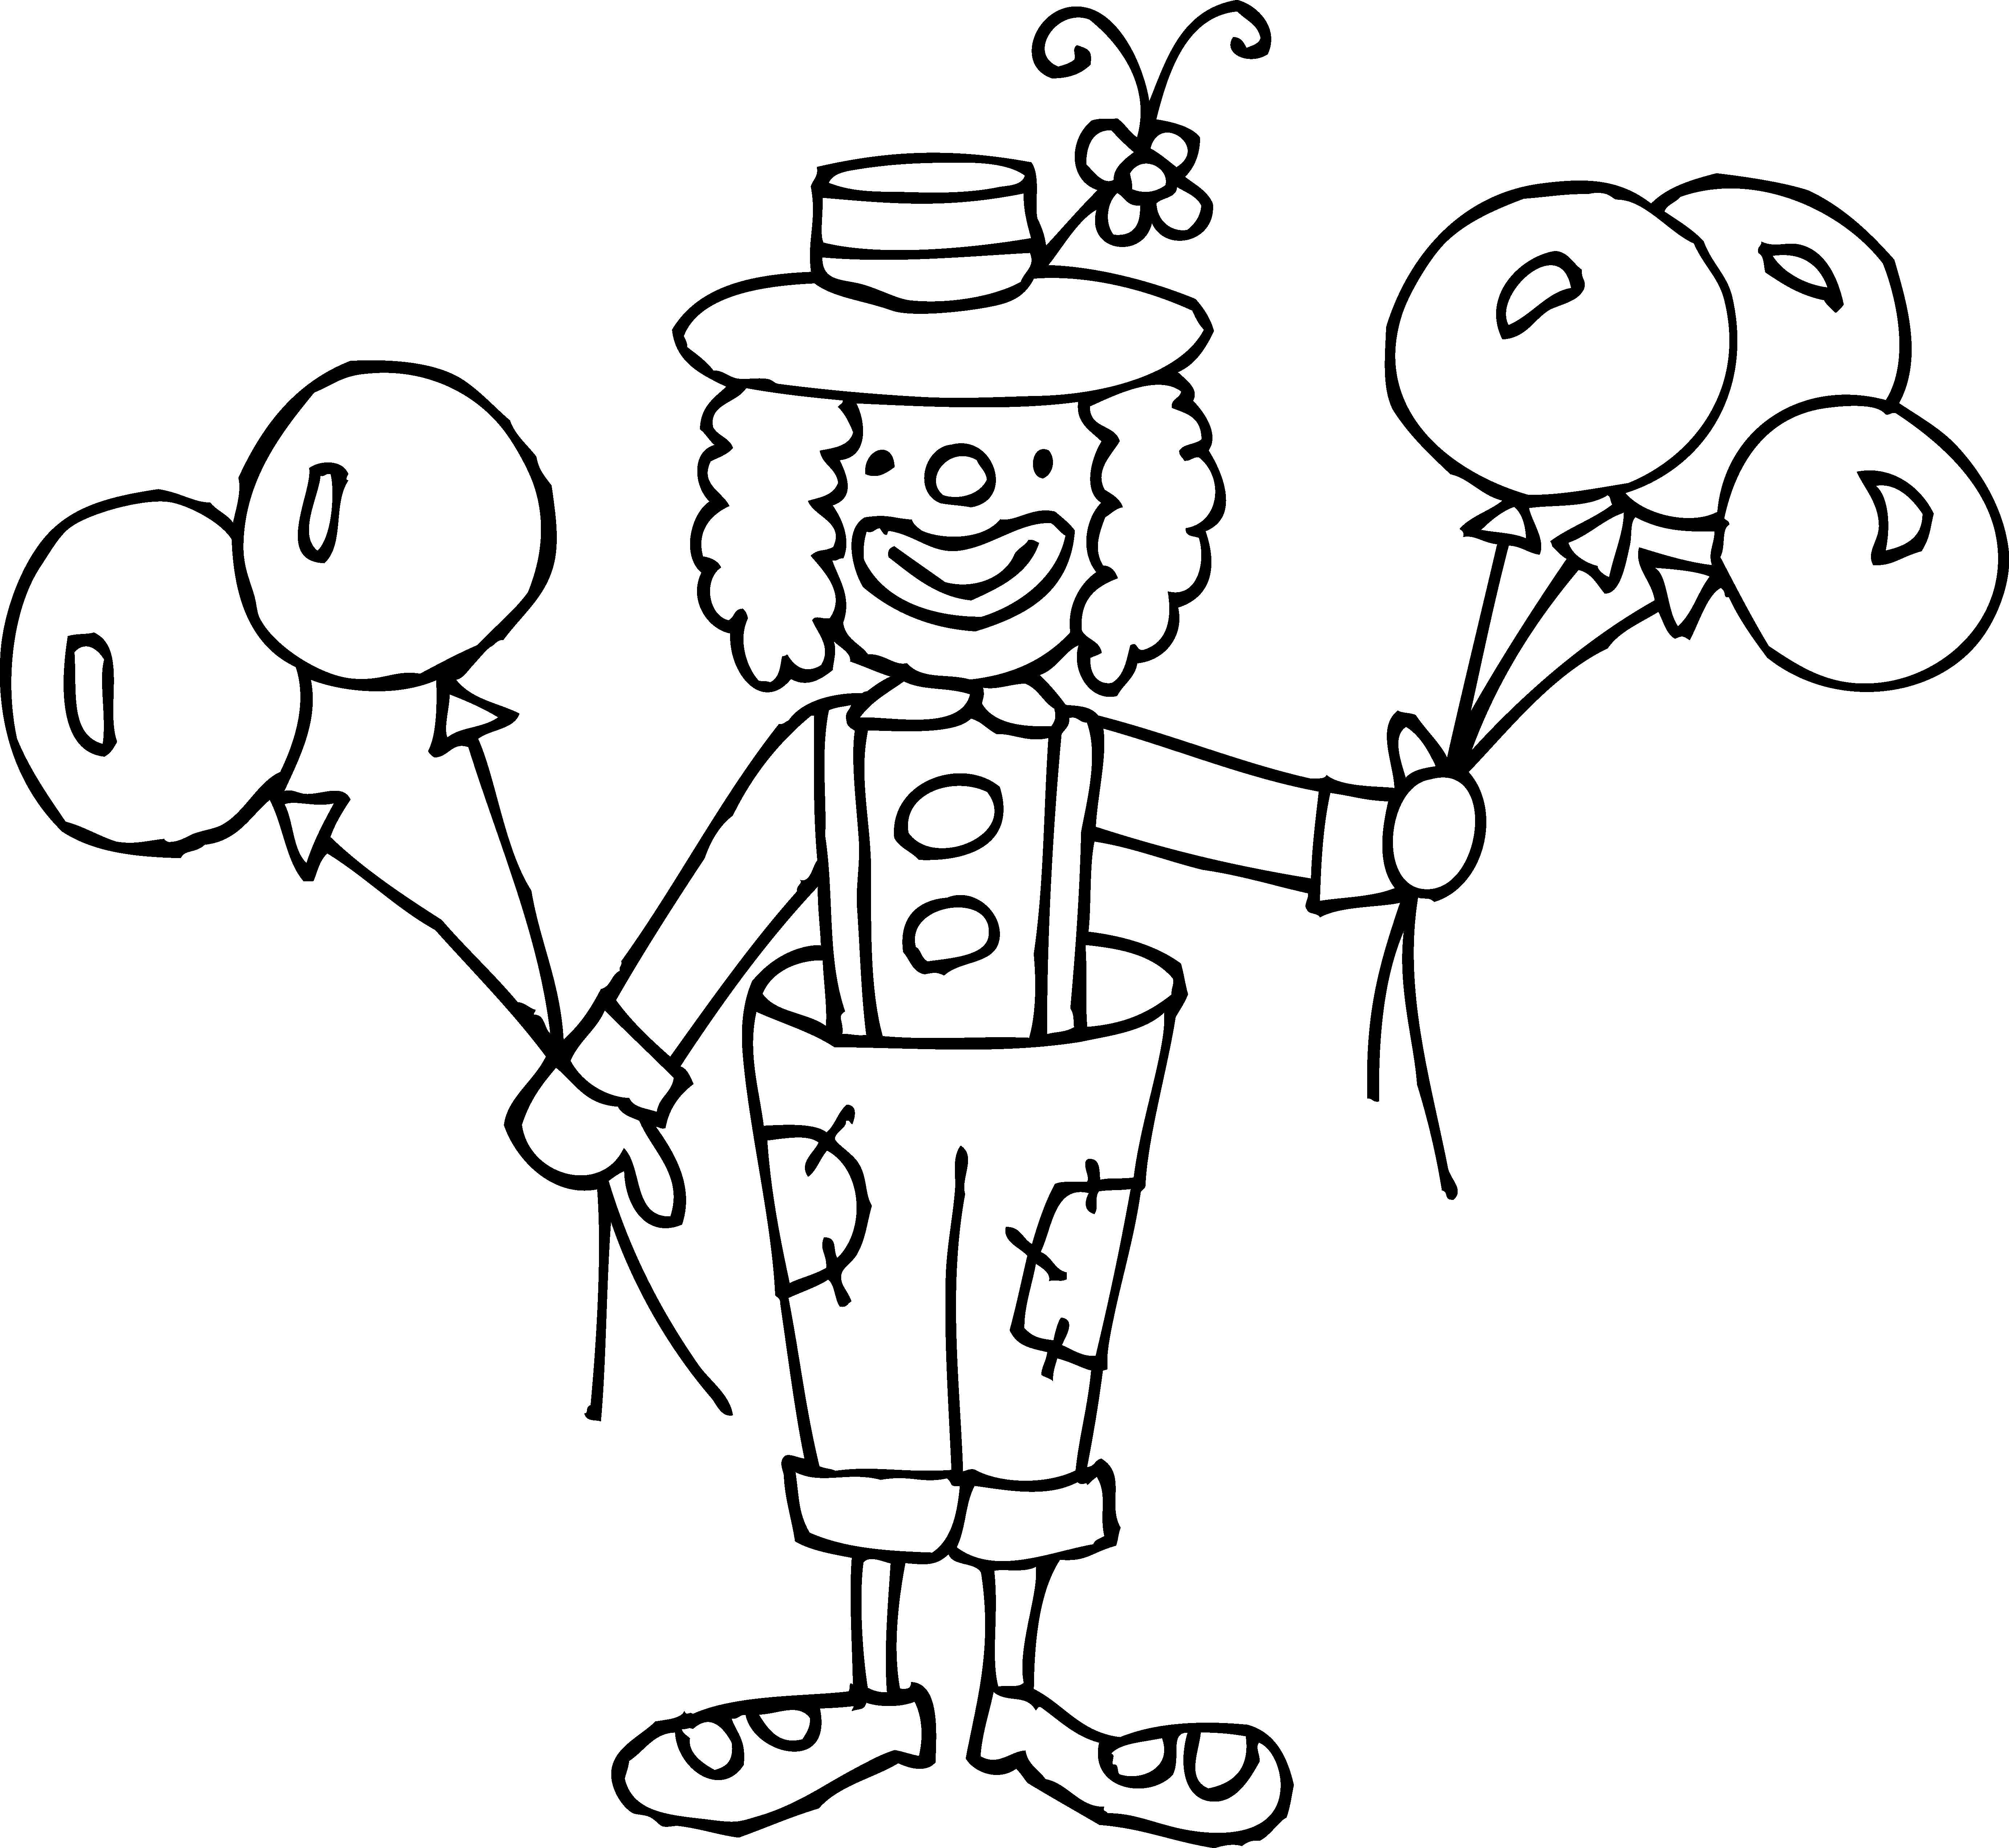 Free Funny Black And White Clipart, Download Free Clip Art.